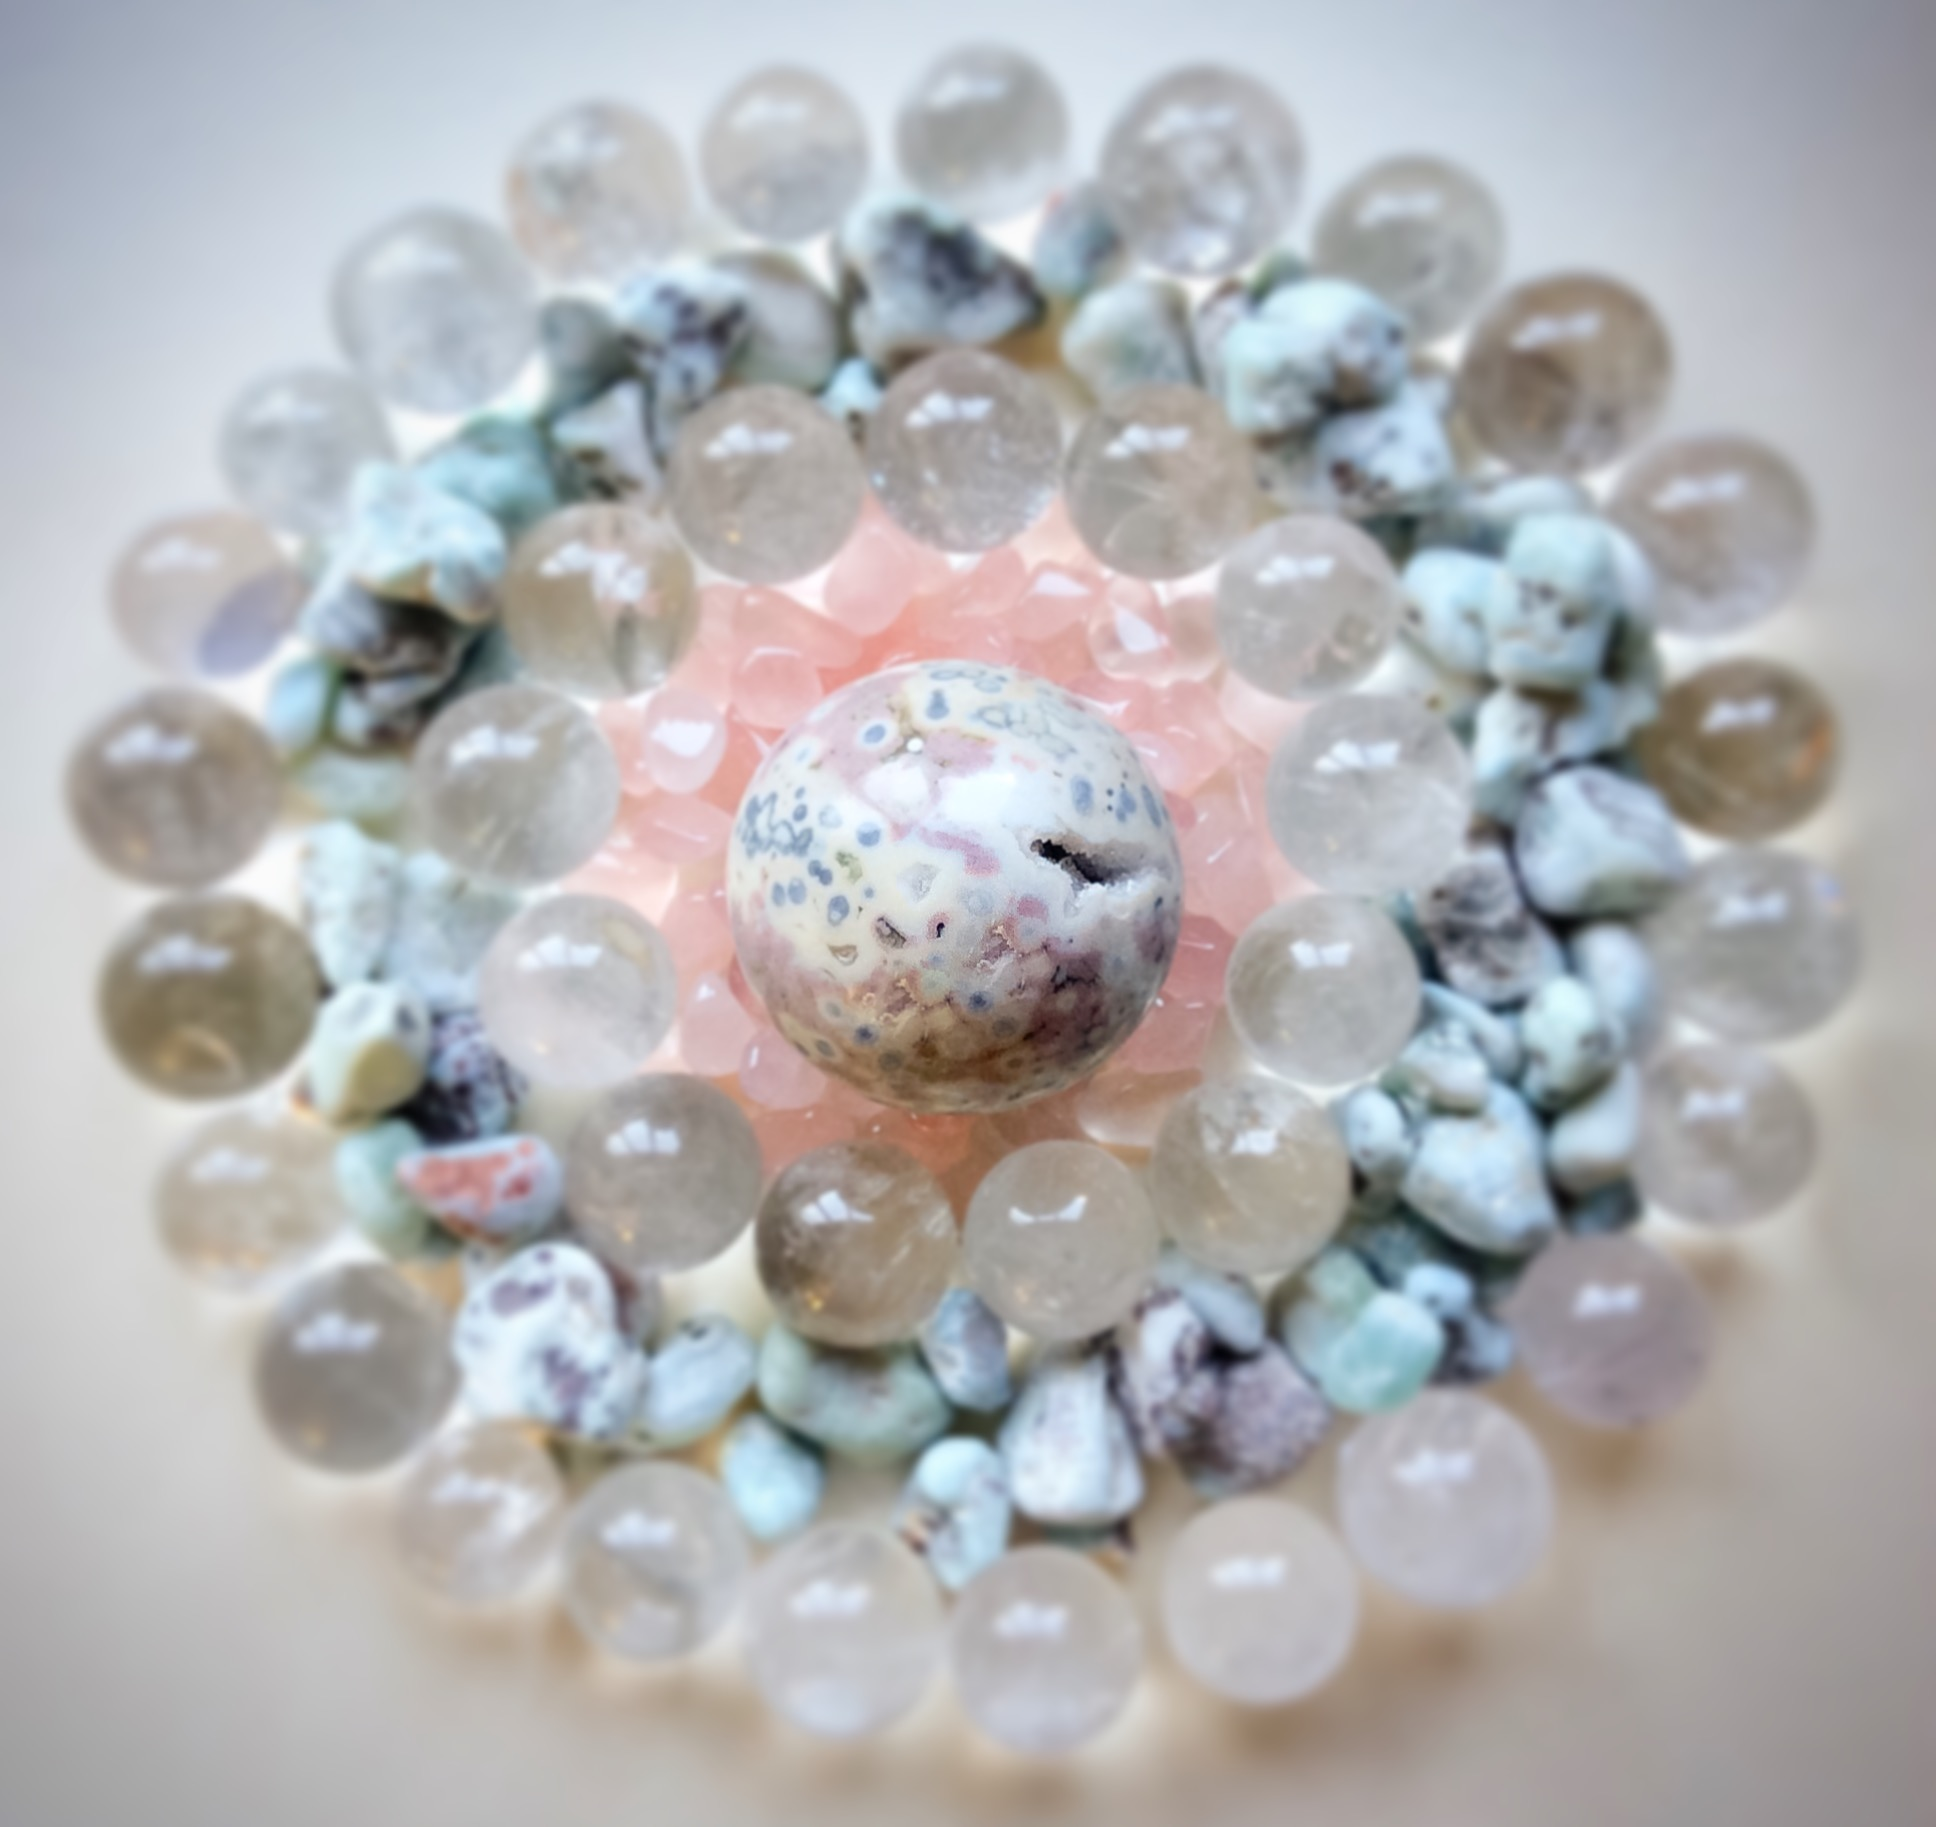 Ocean Jasper, Rose Quartz, Quartz and Larimar